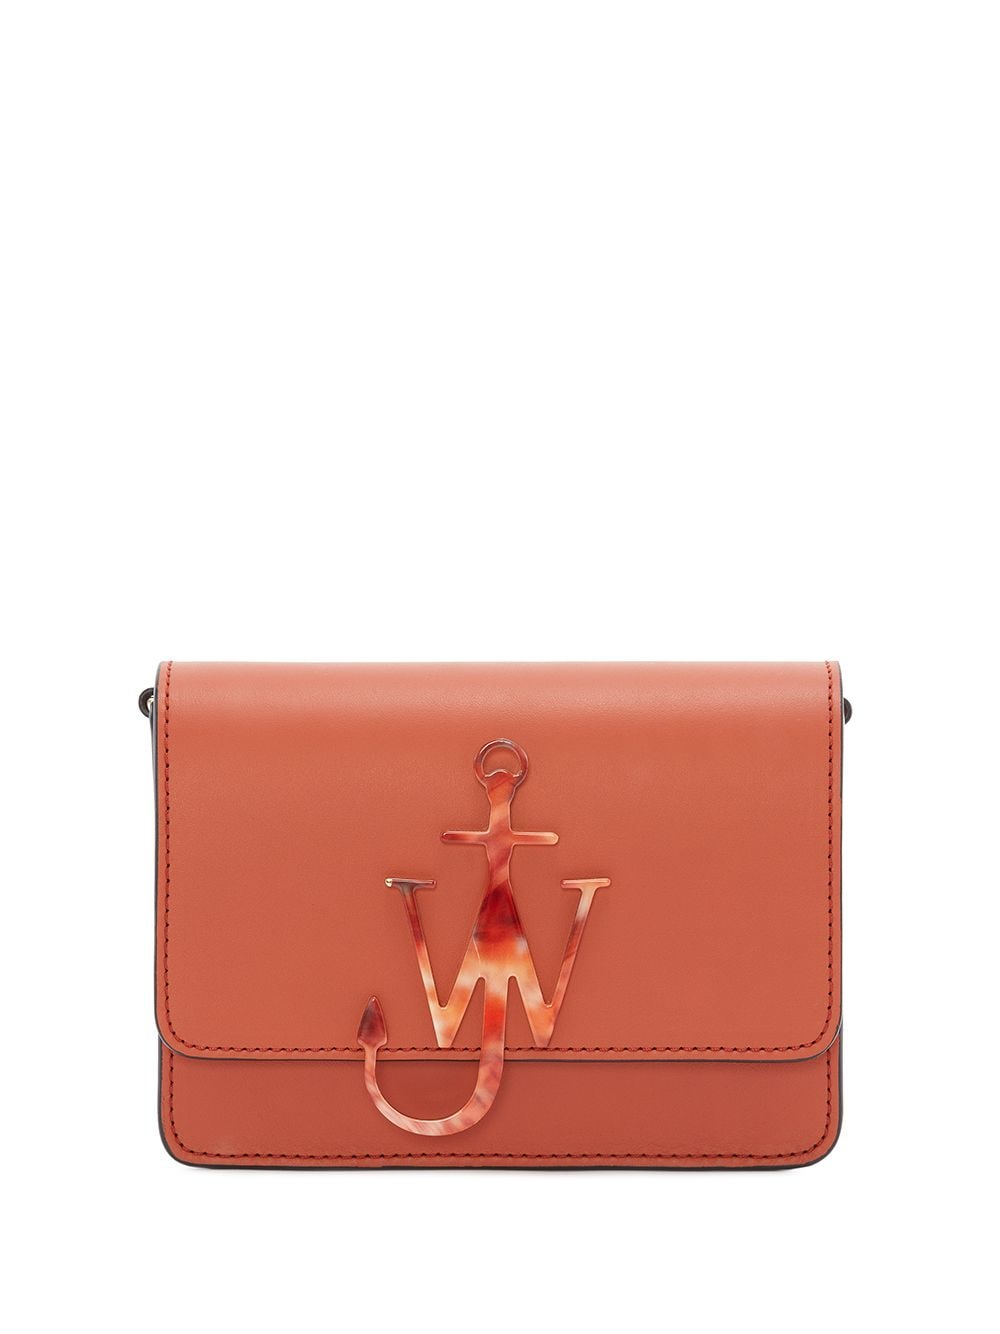 JW ANDERSON WOMEN ANCHOR LOGO BAG